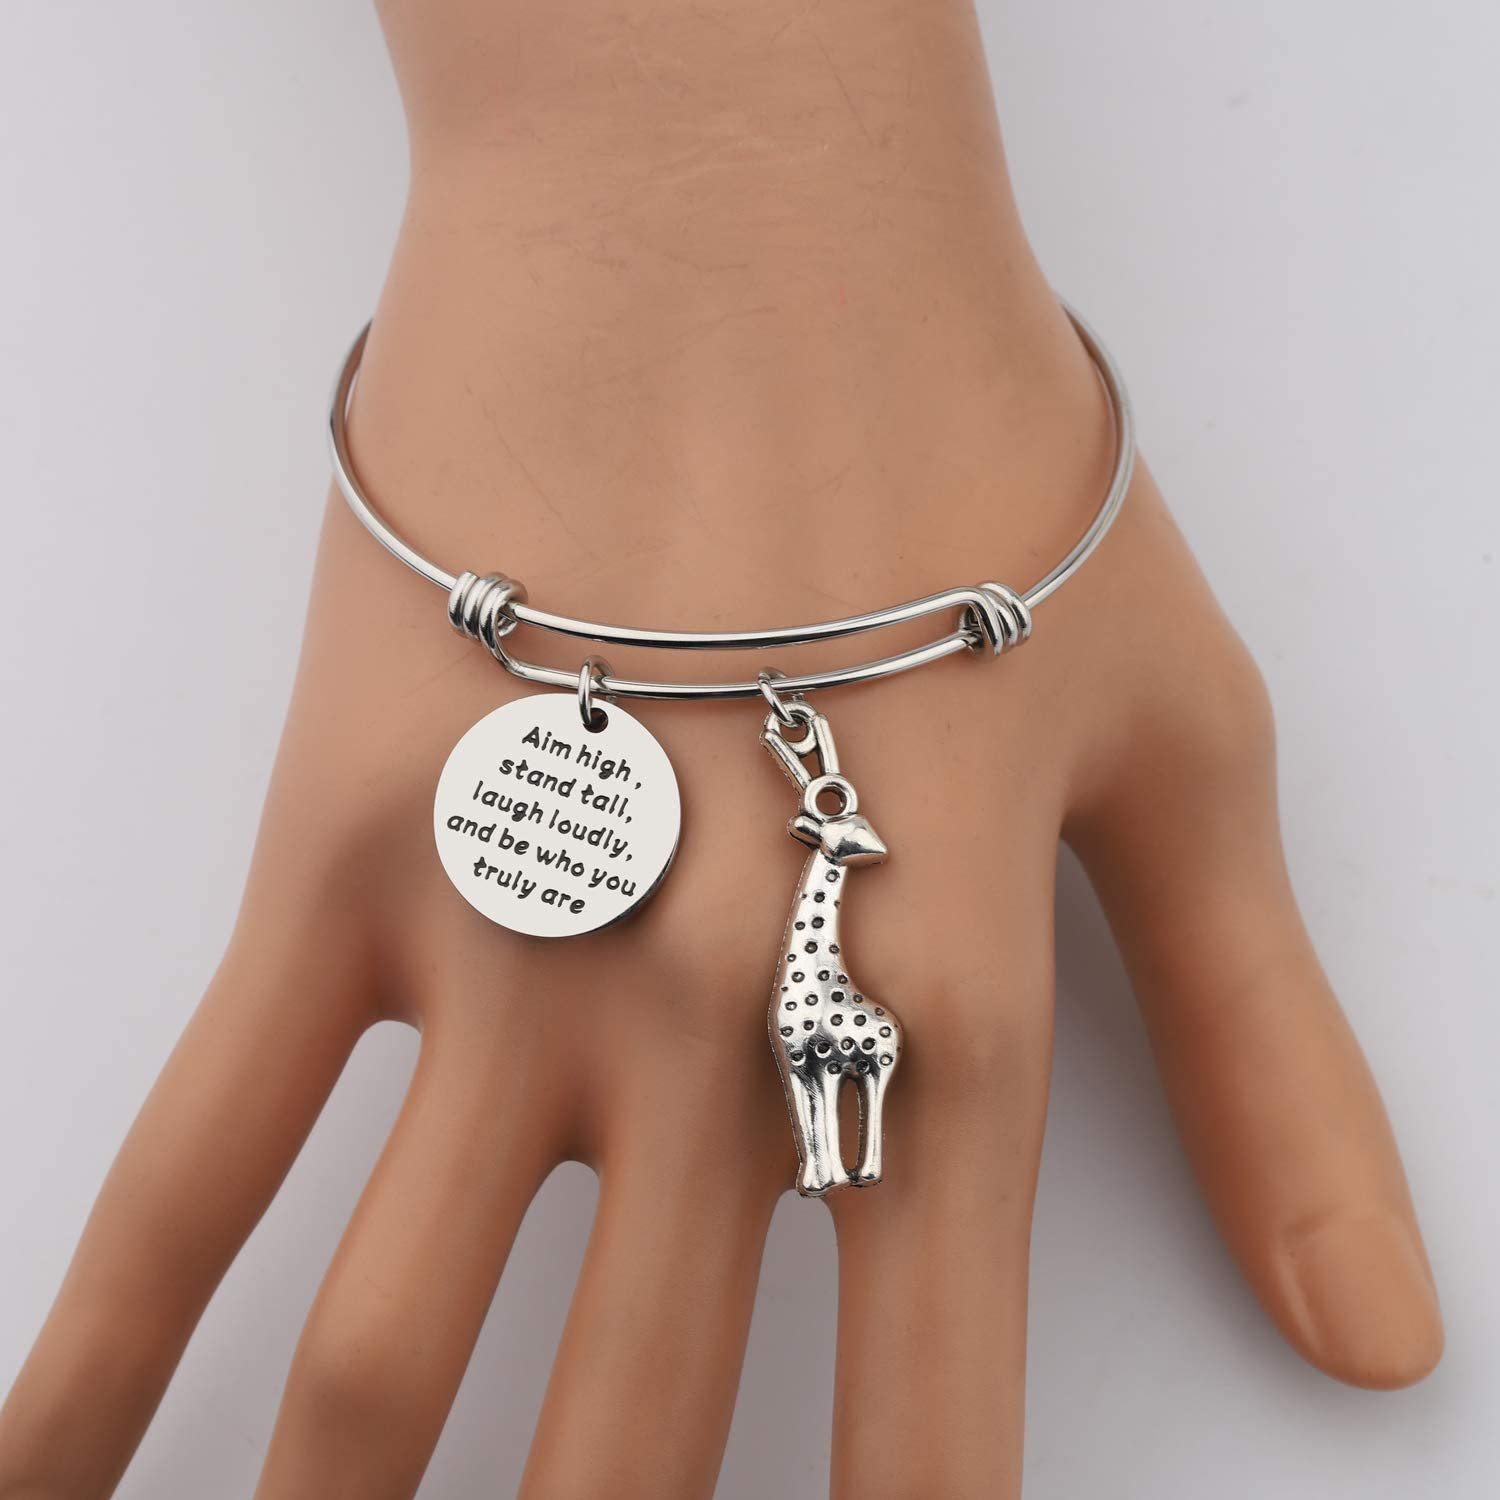 AKTAP Giraffe Gifts Giraffe Jewelry Aim High Stand Tall Laugh Loudly and Be Who You Truly are Giraffe Keychains Inspirational Gifts